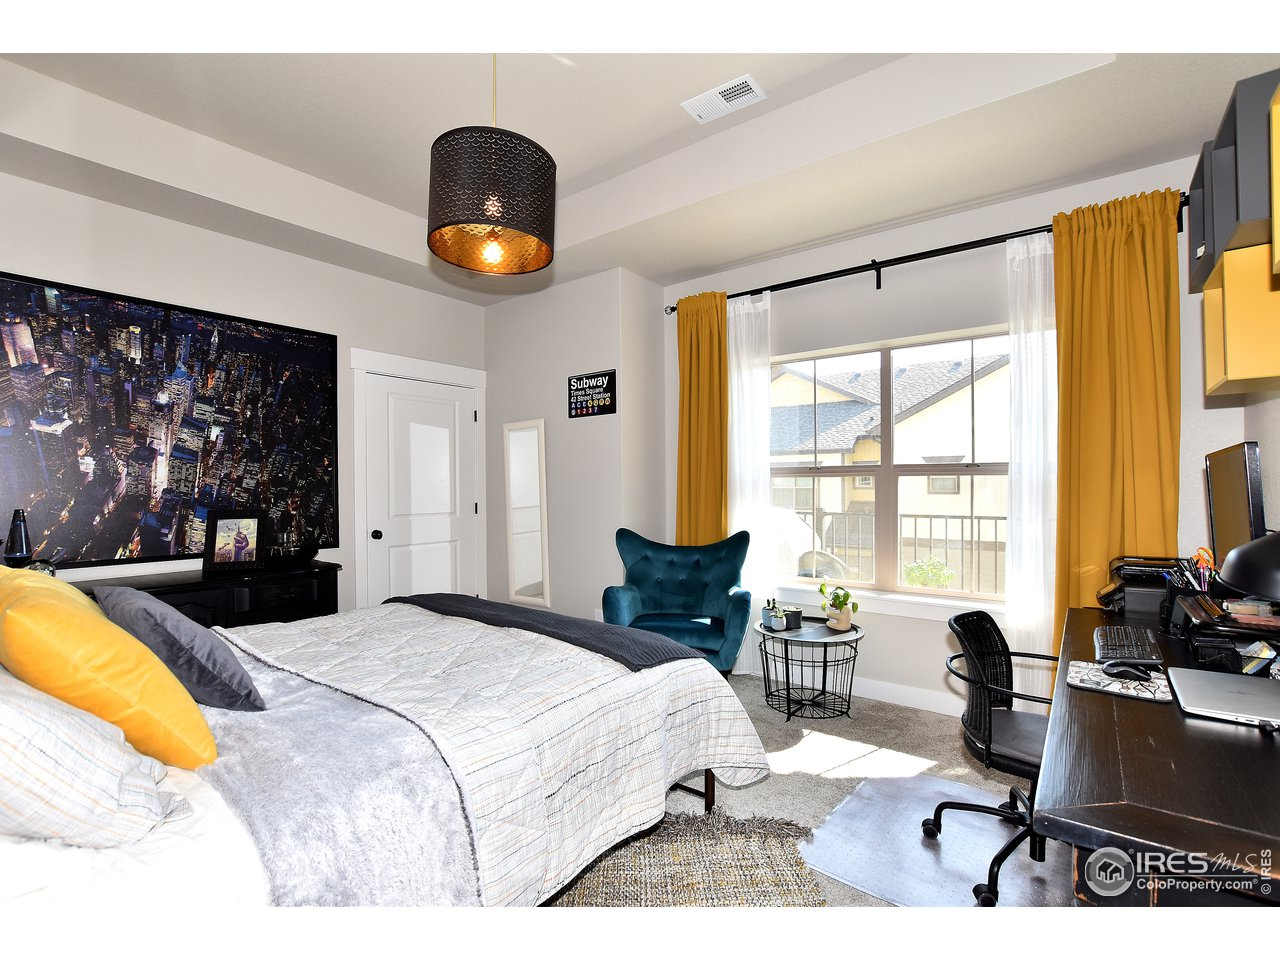 This secondary bedroom is huge!